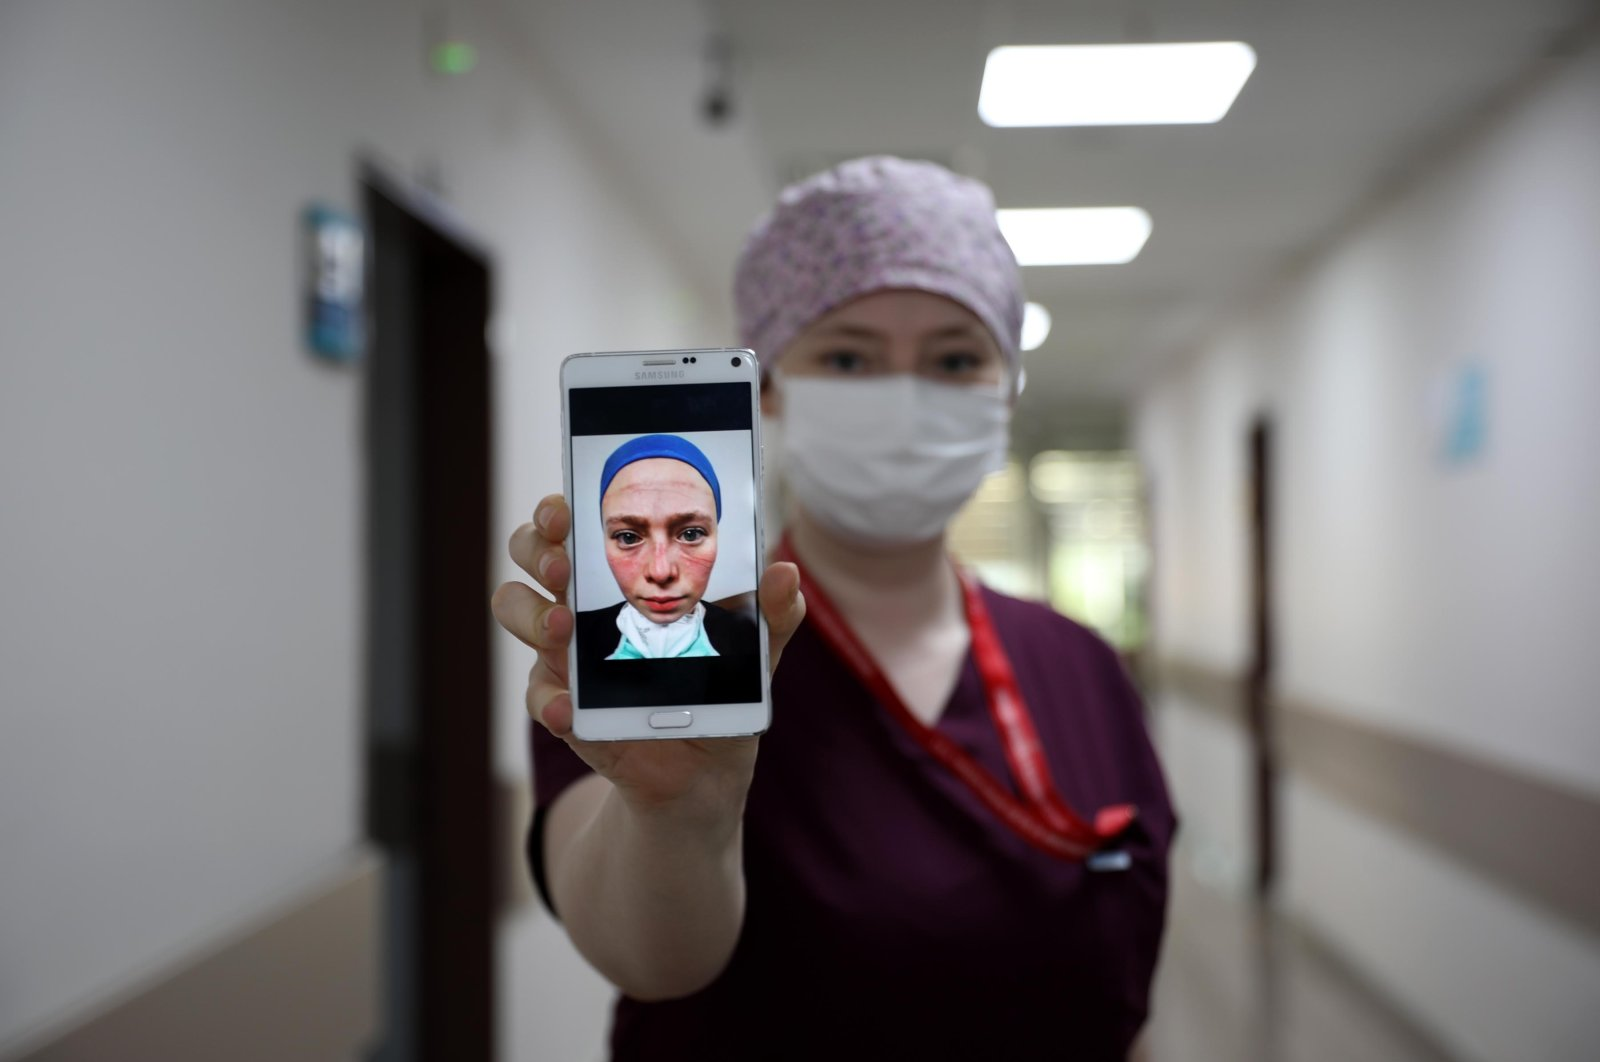 Seher Altuncu shows her viral photo on her cellphone in Trabzon, northern Turkey, Sept. 28, 2020. (DHA Photo)